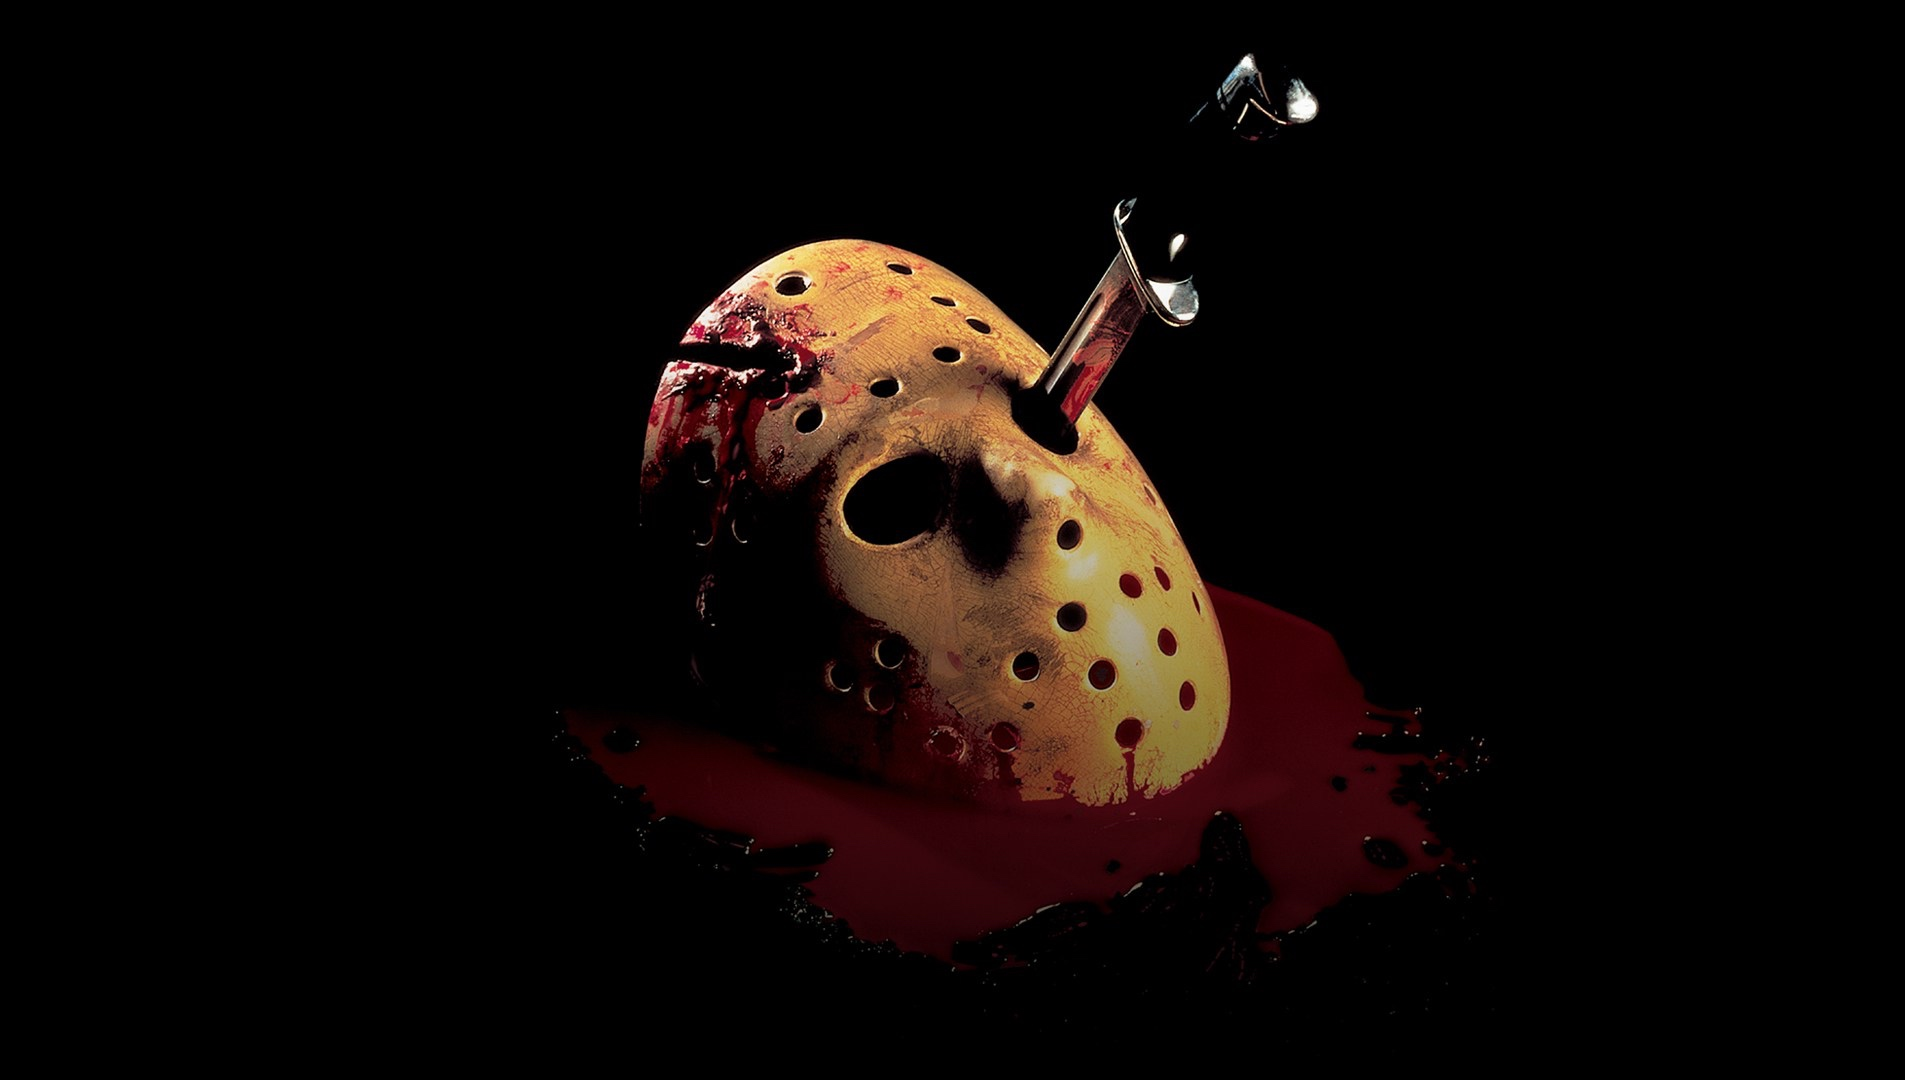 An interview with Friday the 13th composer Harry Manfredini